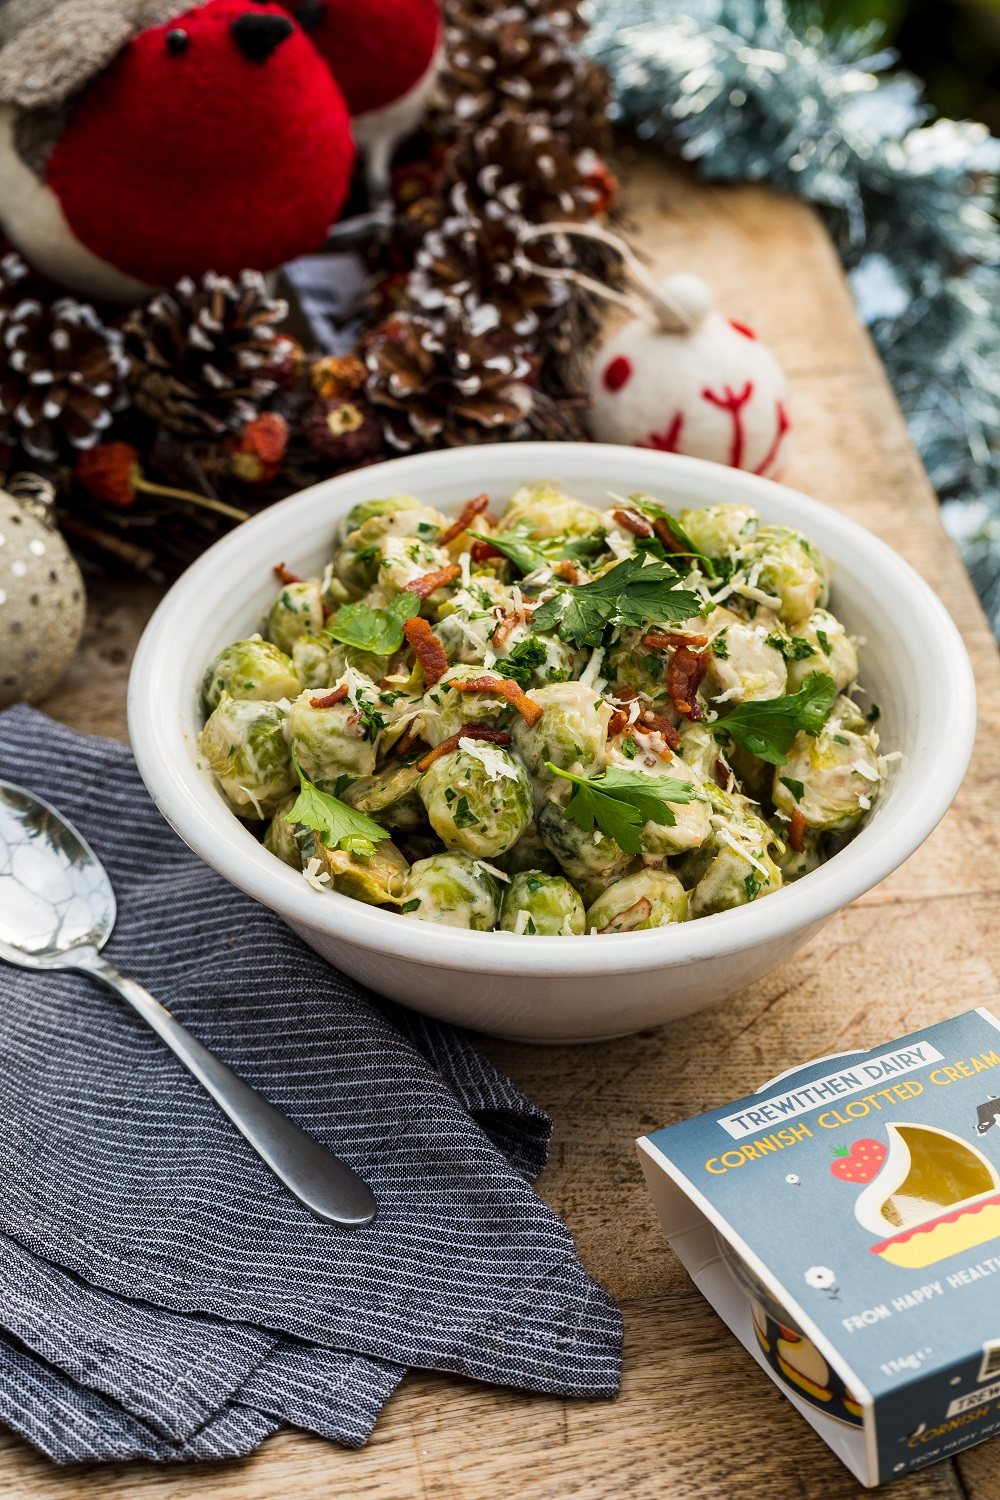 Sautéed Brussels Sprouts With Trewithen Clotted